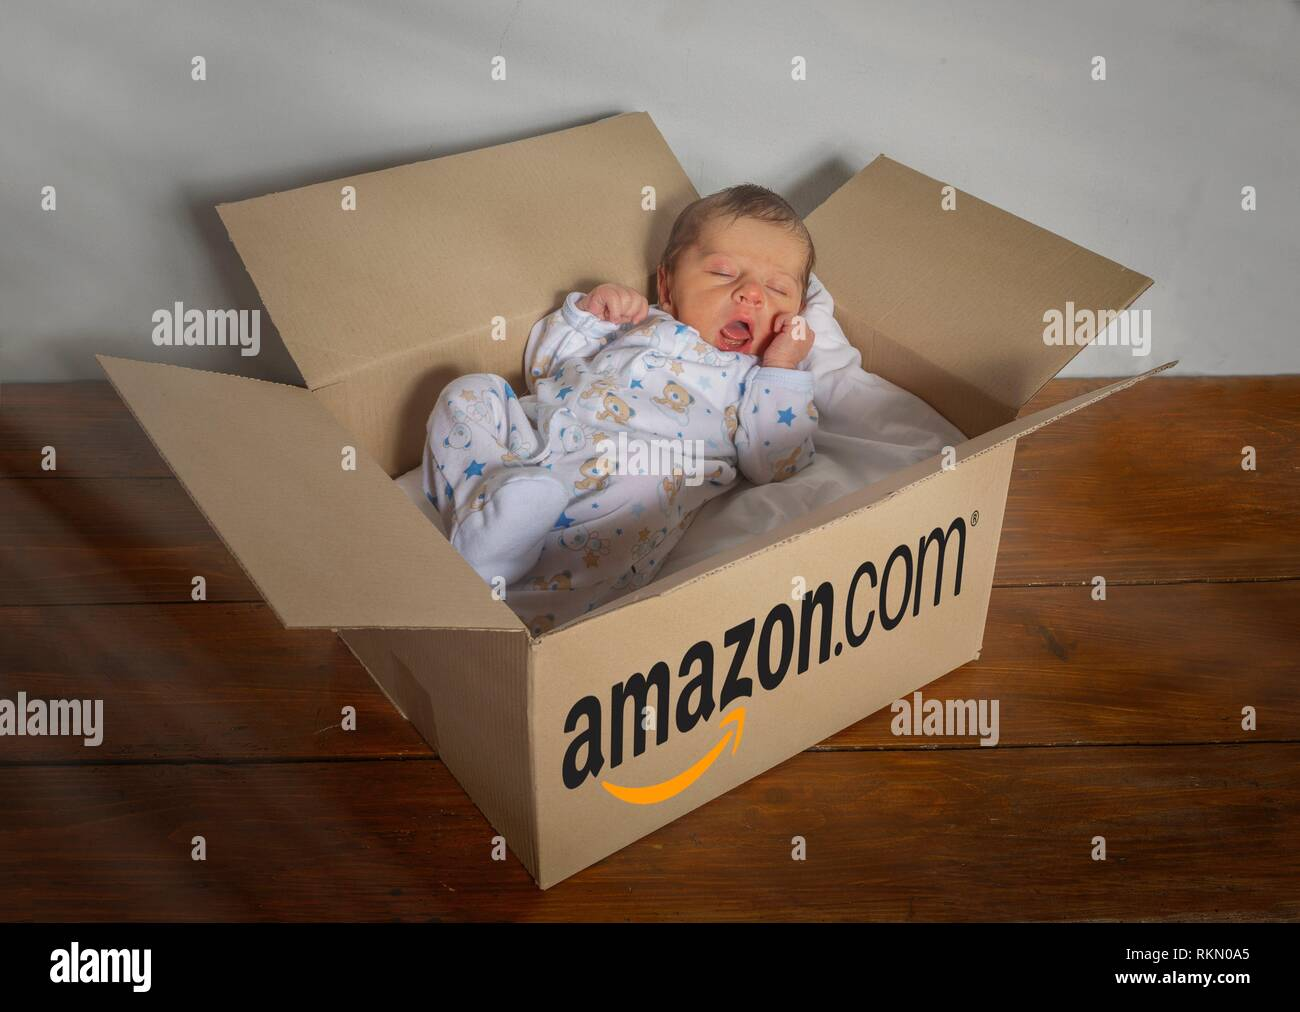 newborn baby delivered by amazon - Stock Image